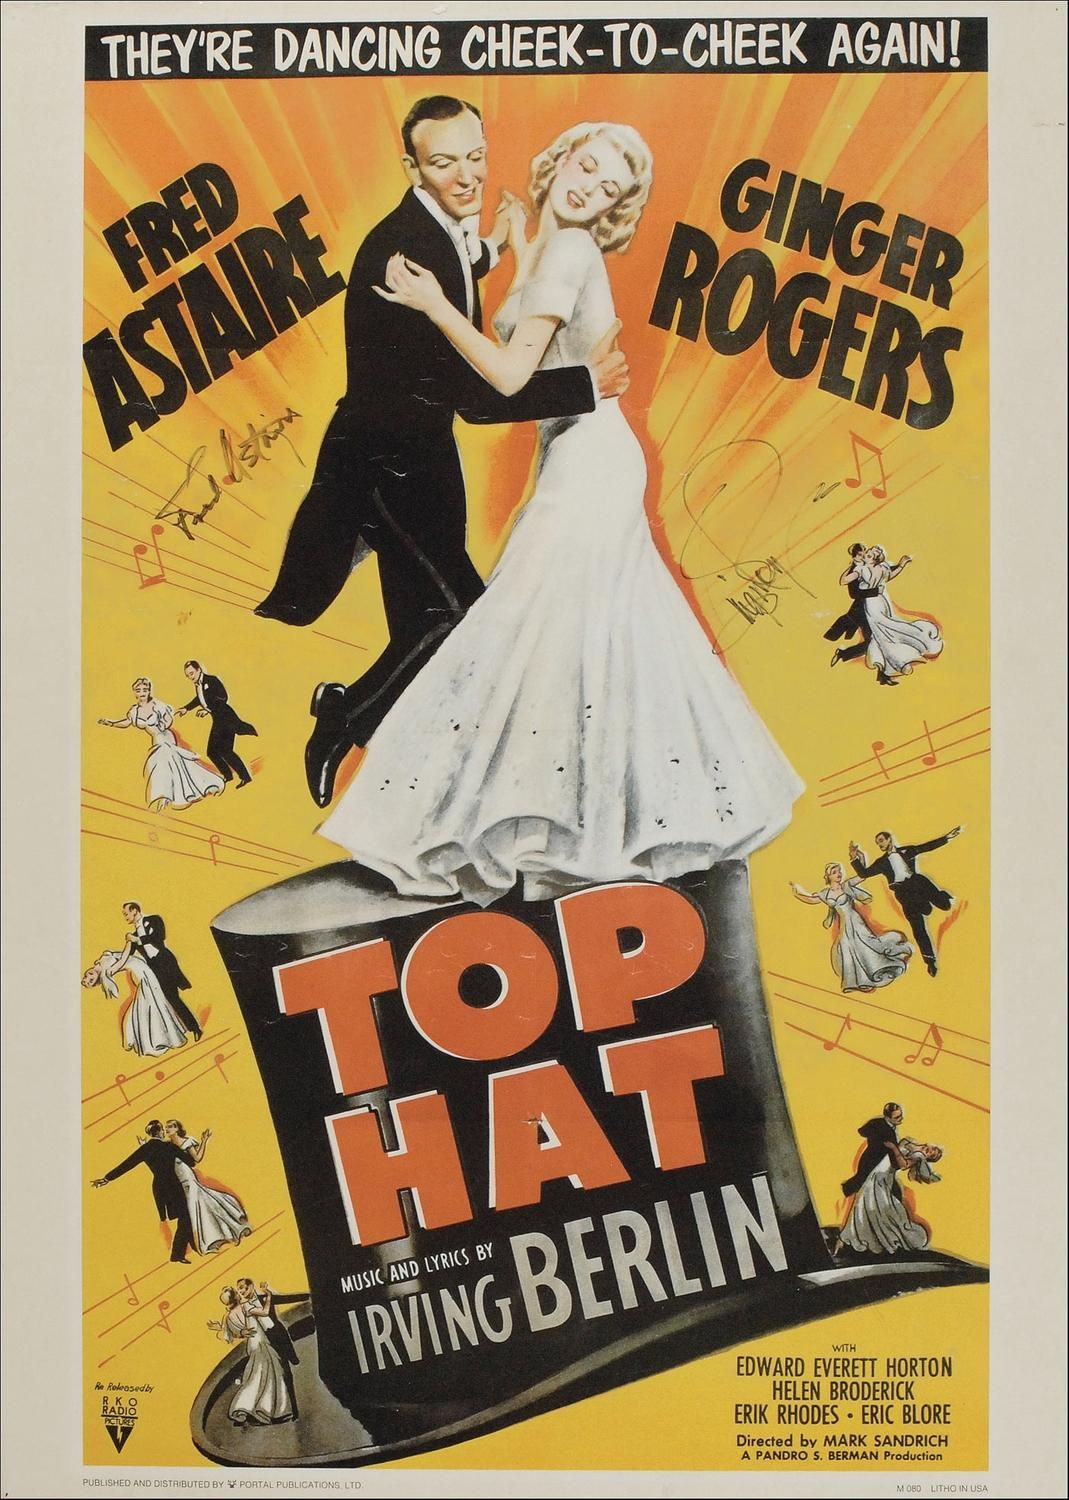 Fred Astaire And Ginger Rogers Movie Posters Vintage Movies Top Hat 1935